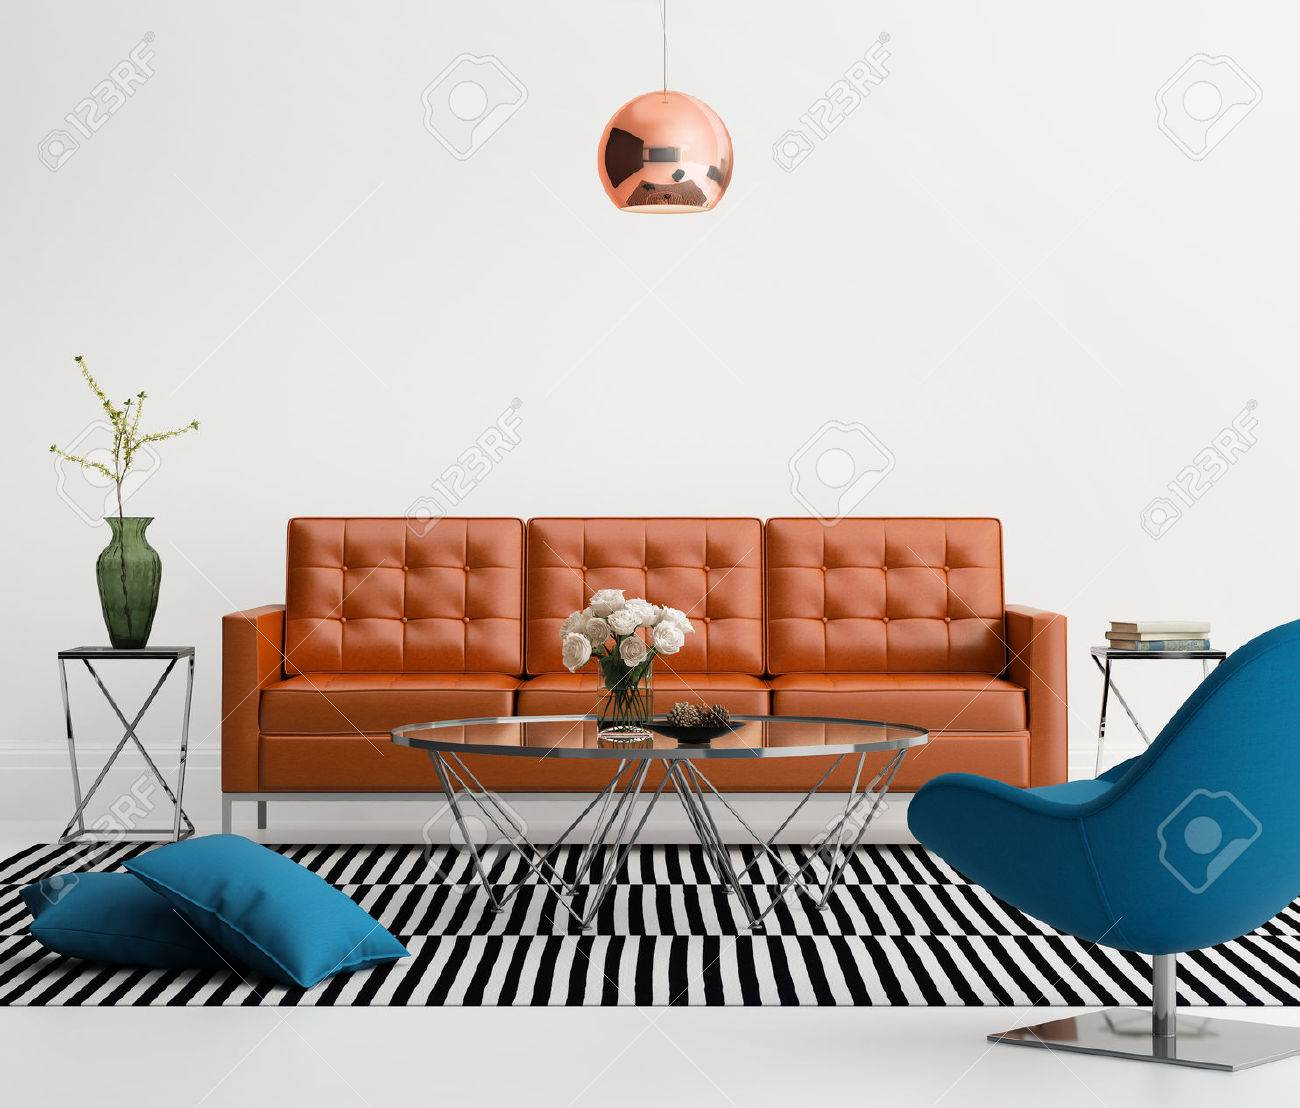 Contemporary Living Room With Orange Leather Sofa Stock Photo   28947081